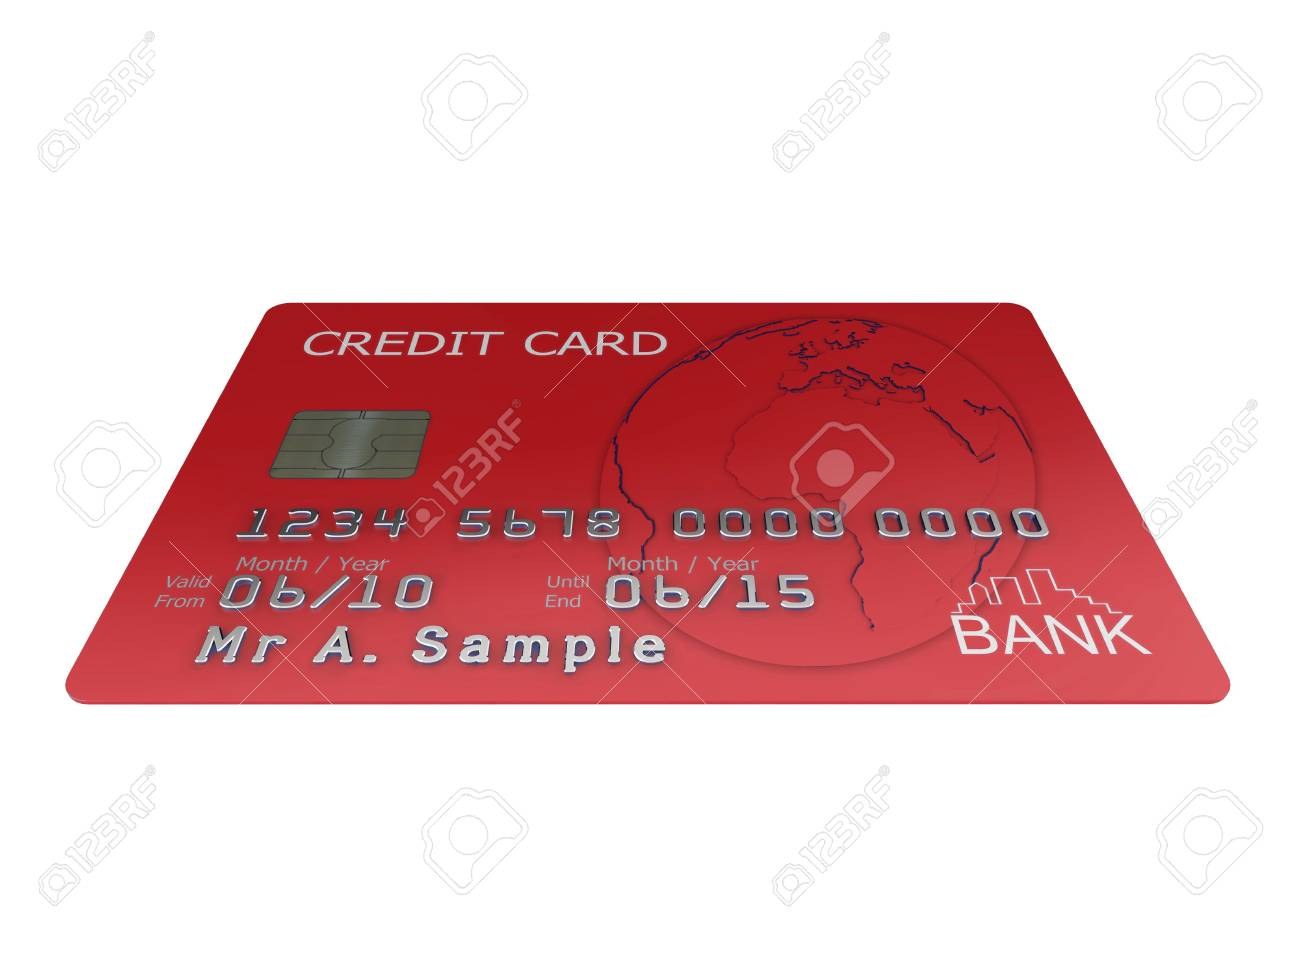 Realistic illustration of a red credit card with fictional details, isolated on a white background. Stock Illustration - 5754330